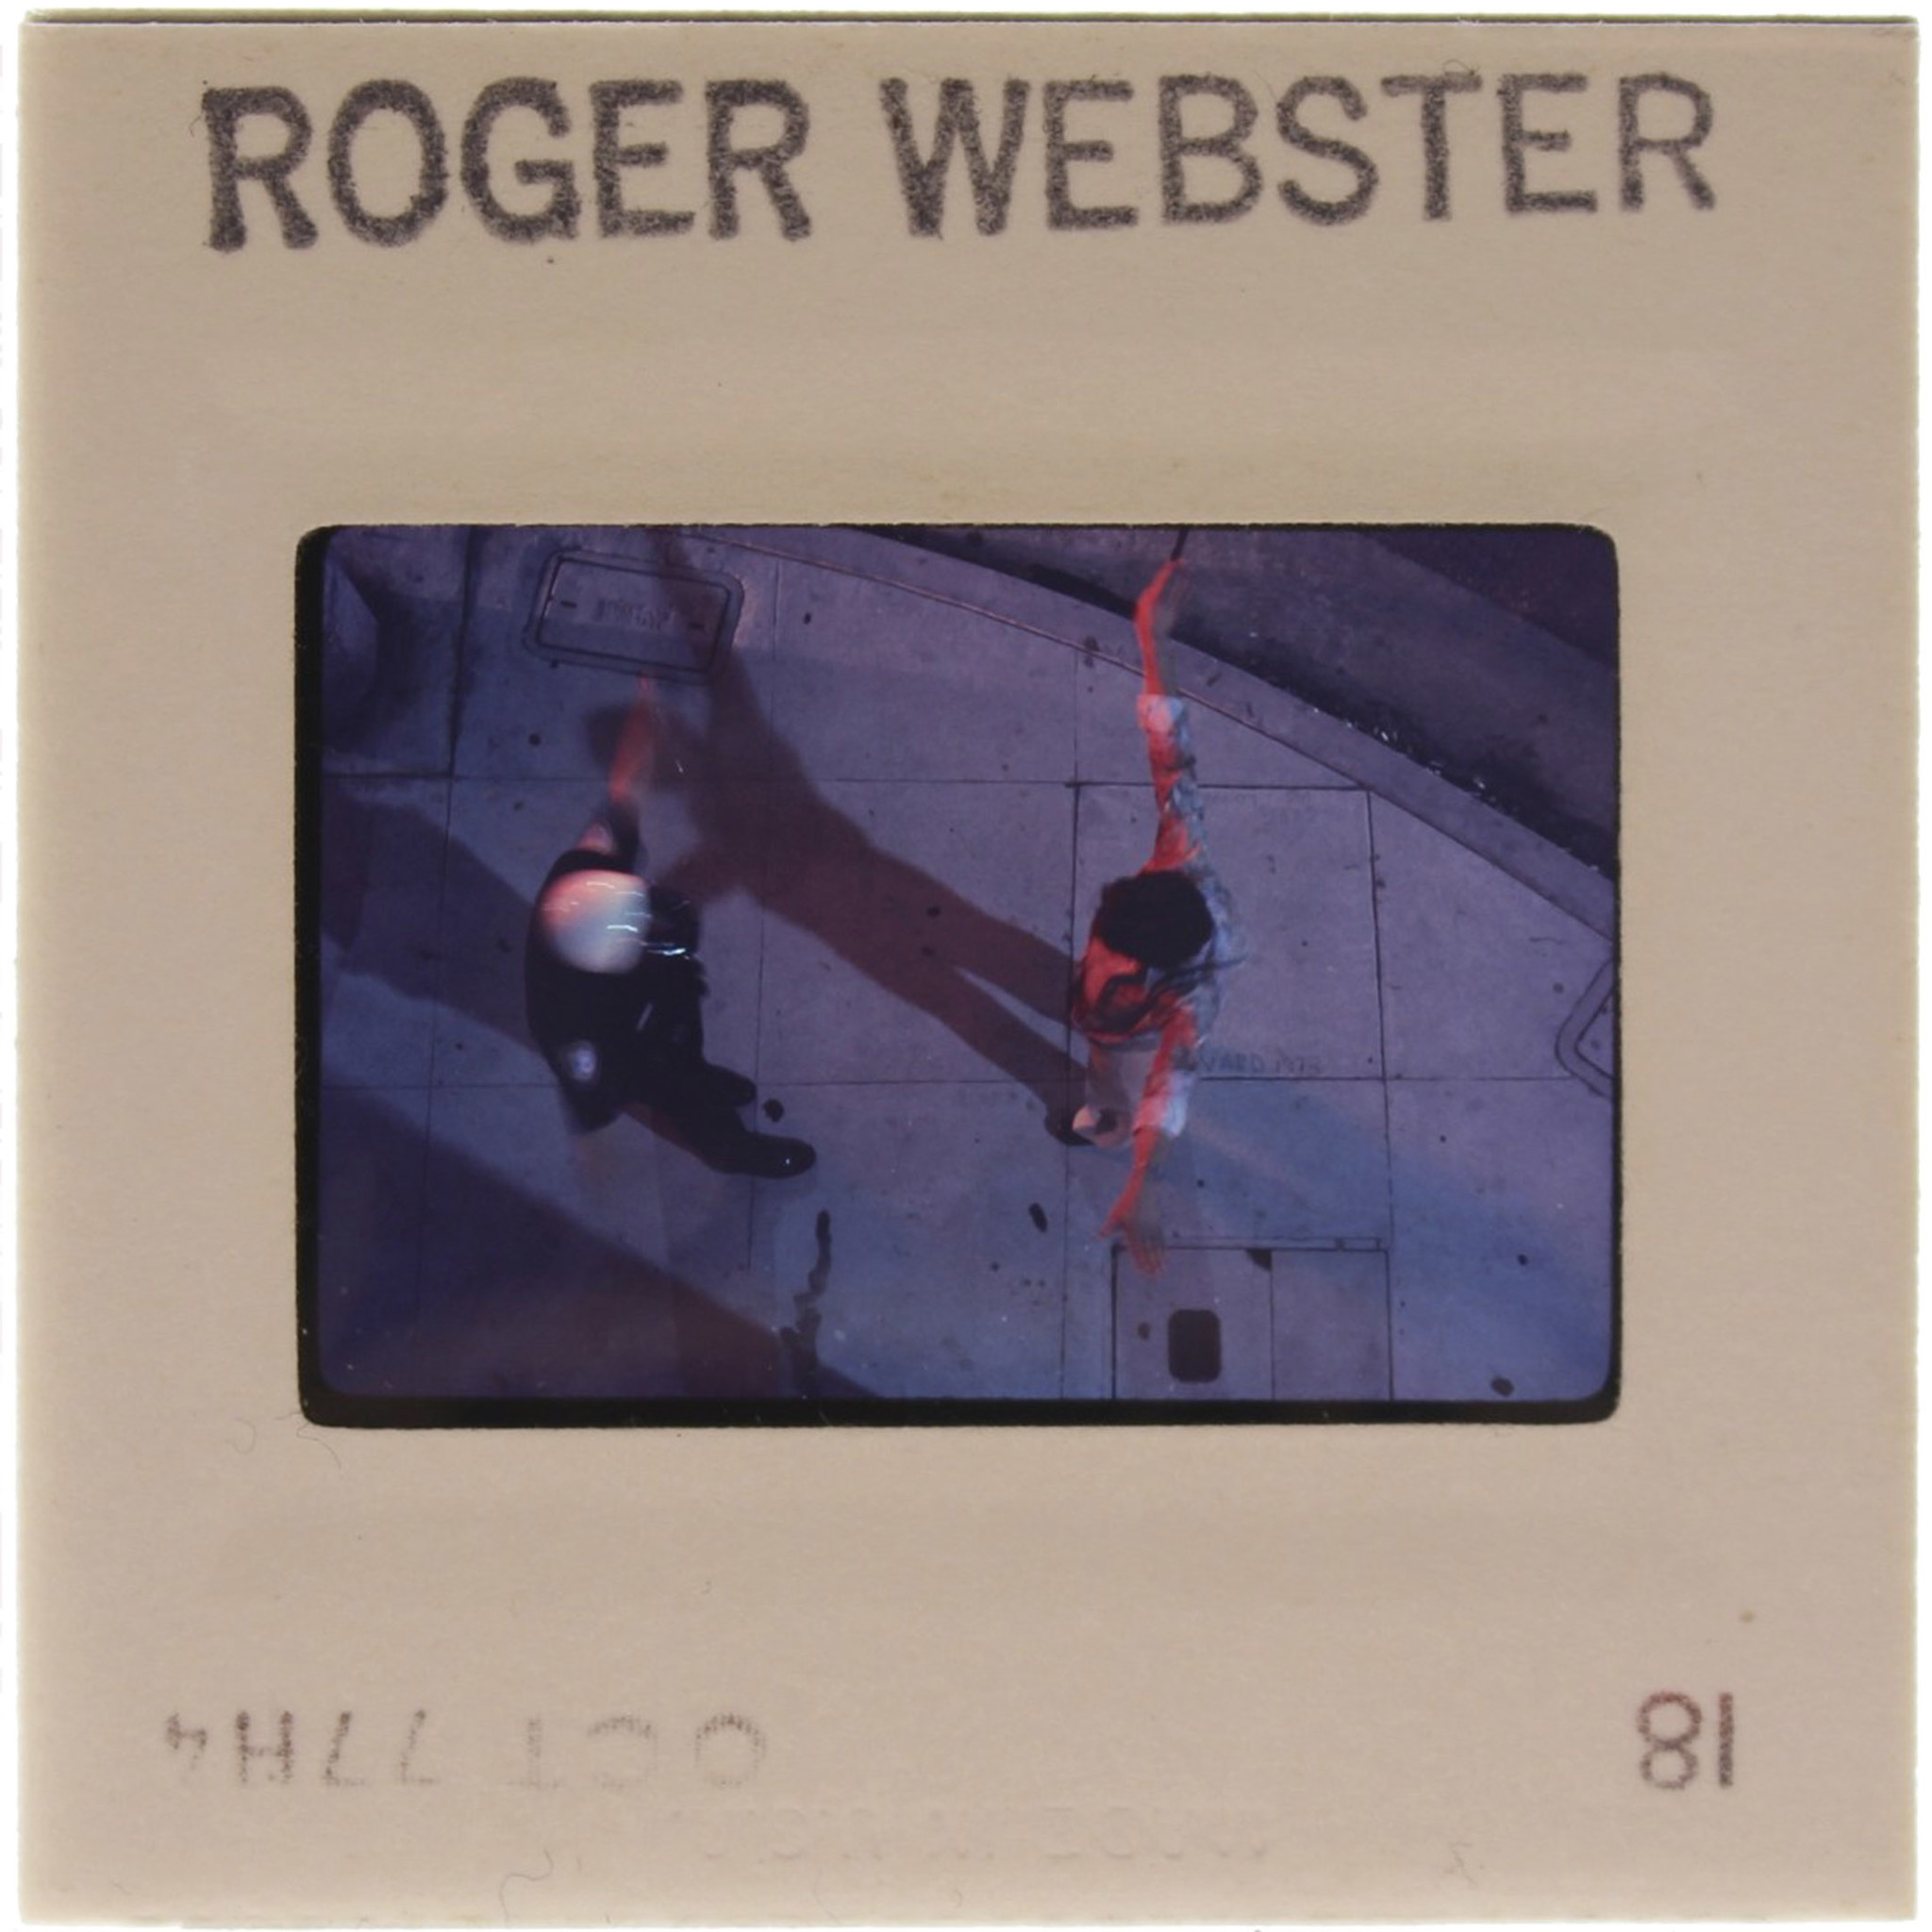 A photograph by Roger Webster of a sidewalk encounter with the Los Angeles police.